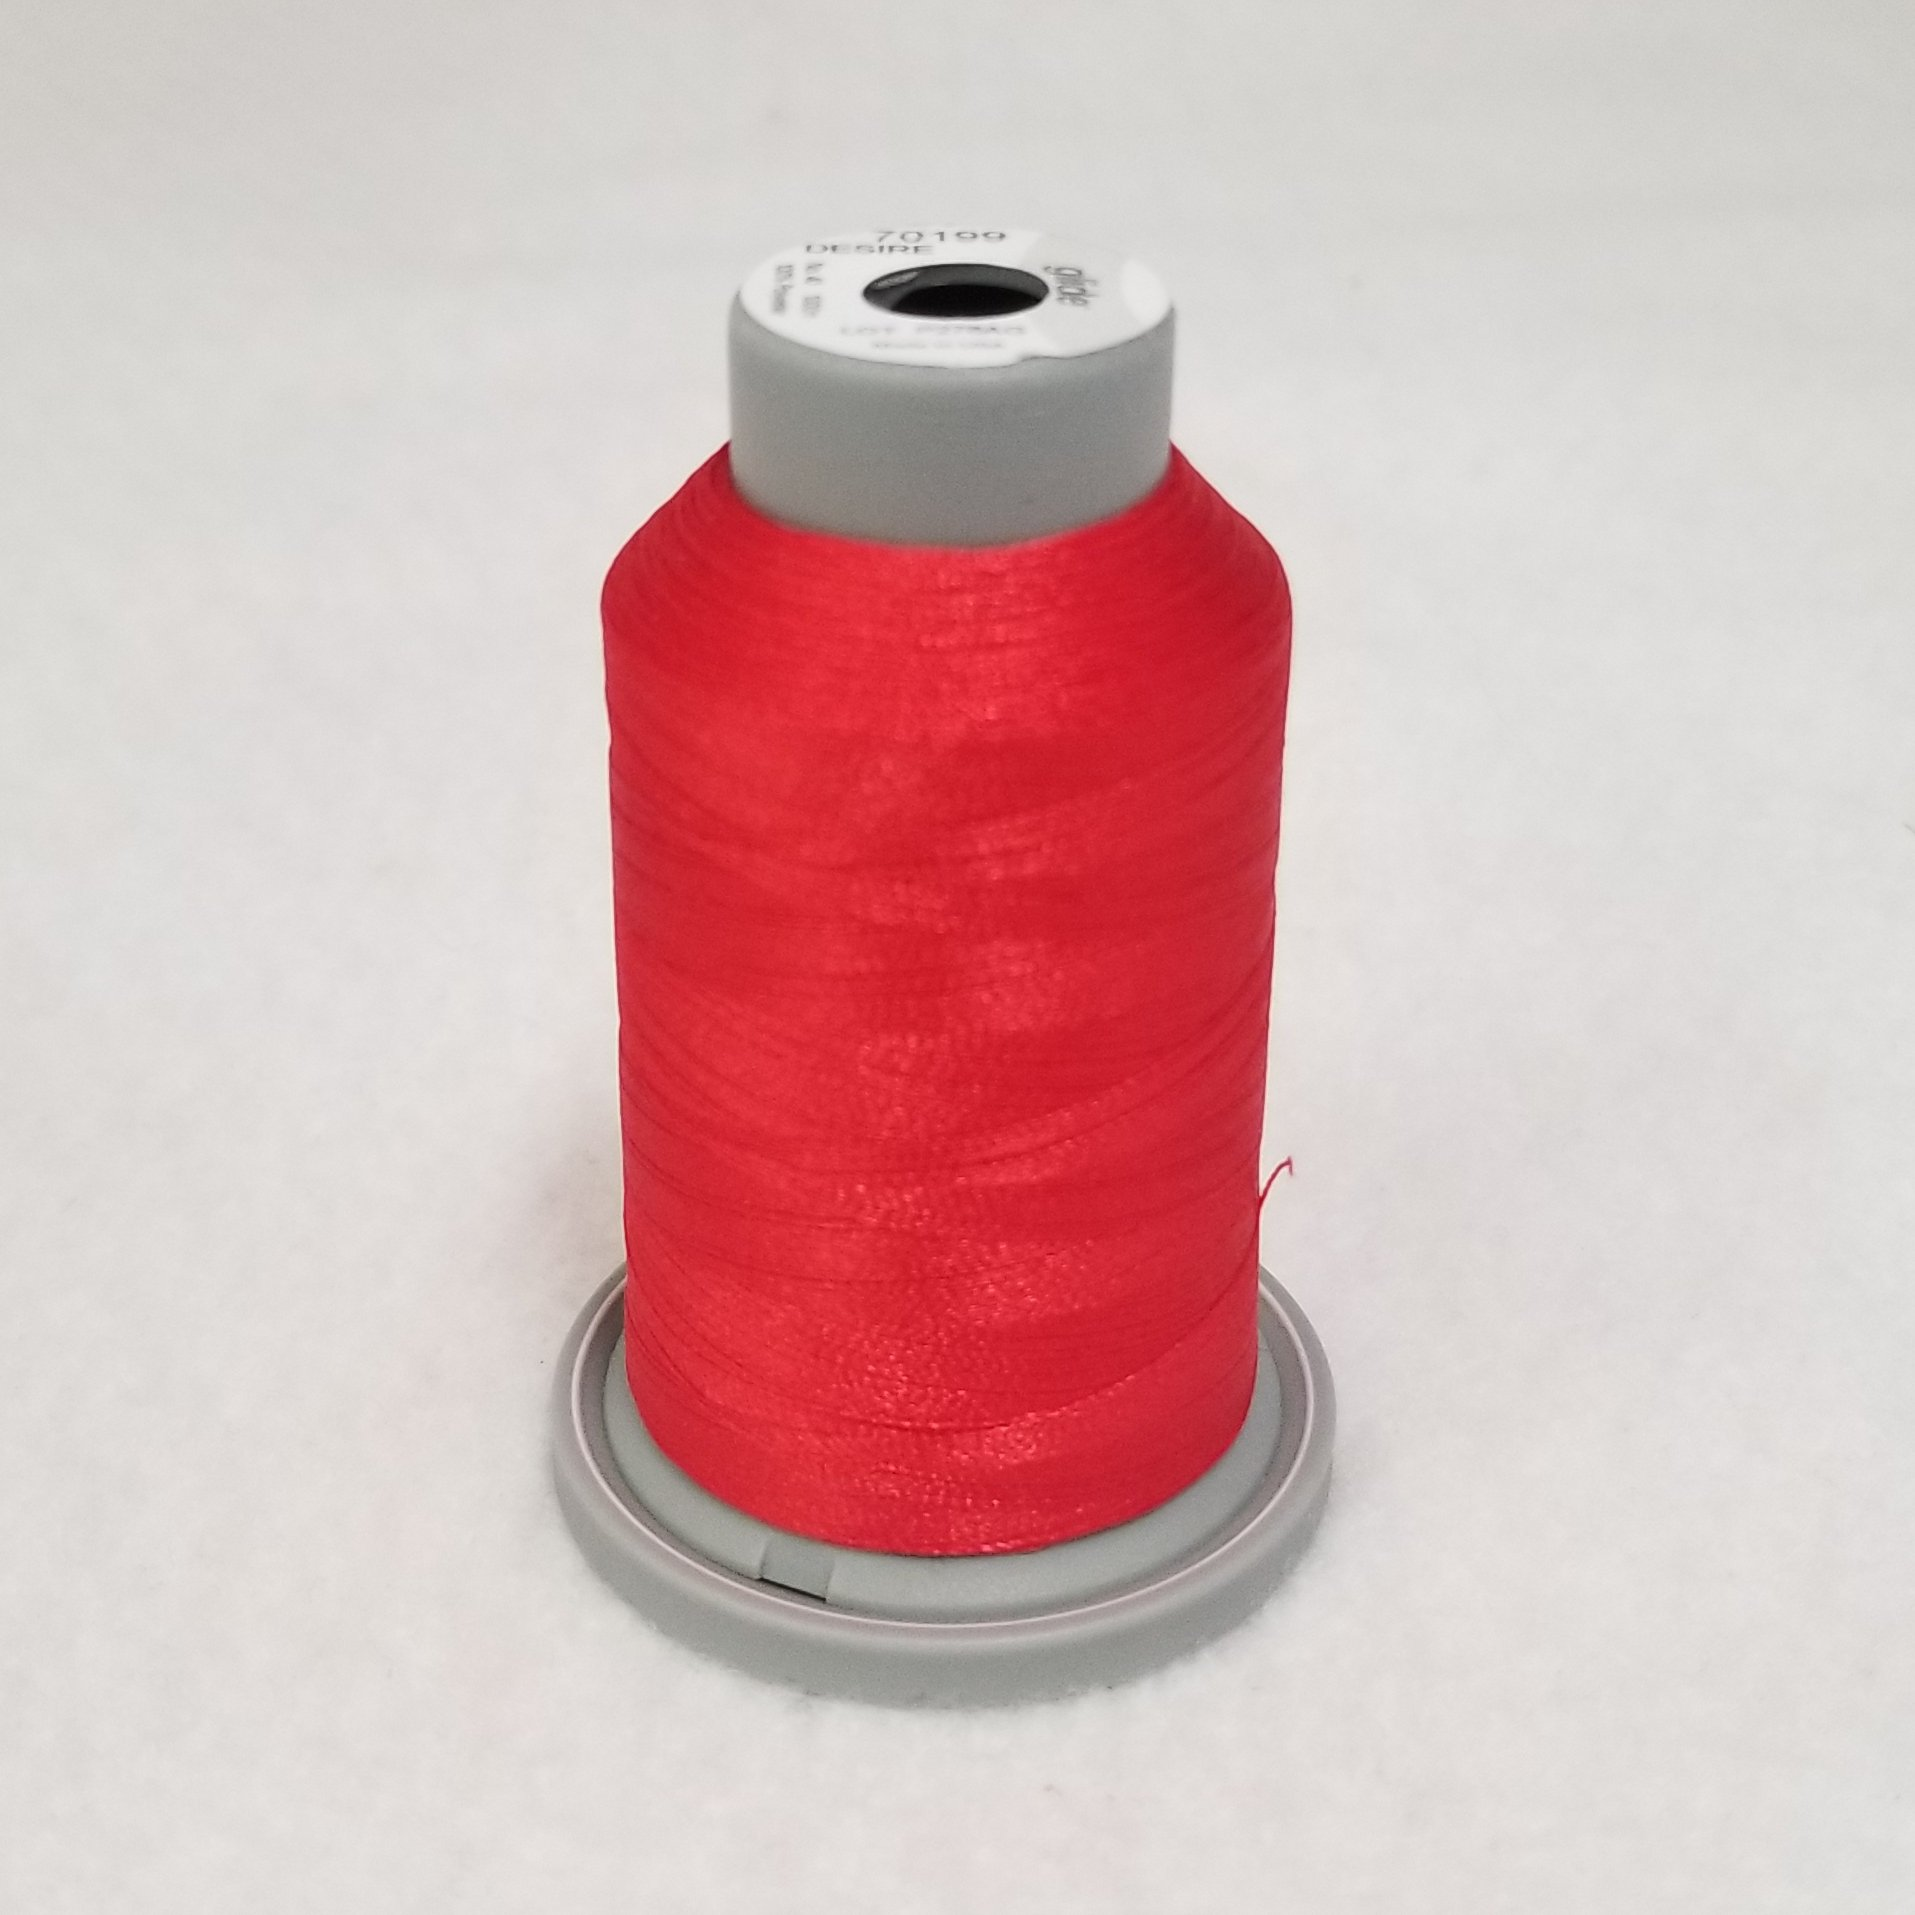 Desire Red Glide Thread Spool